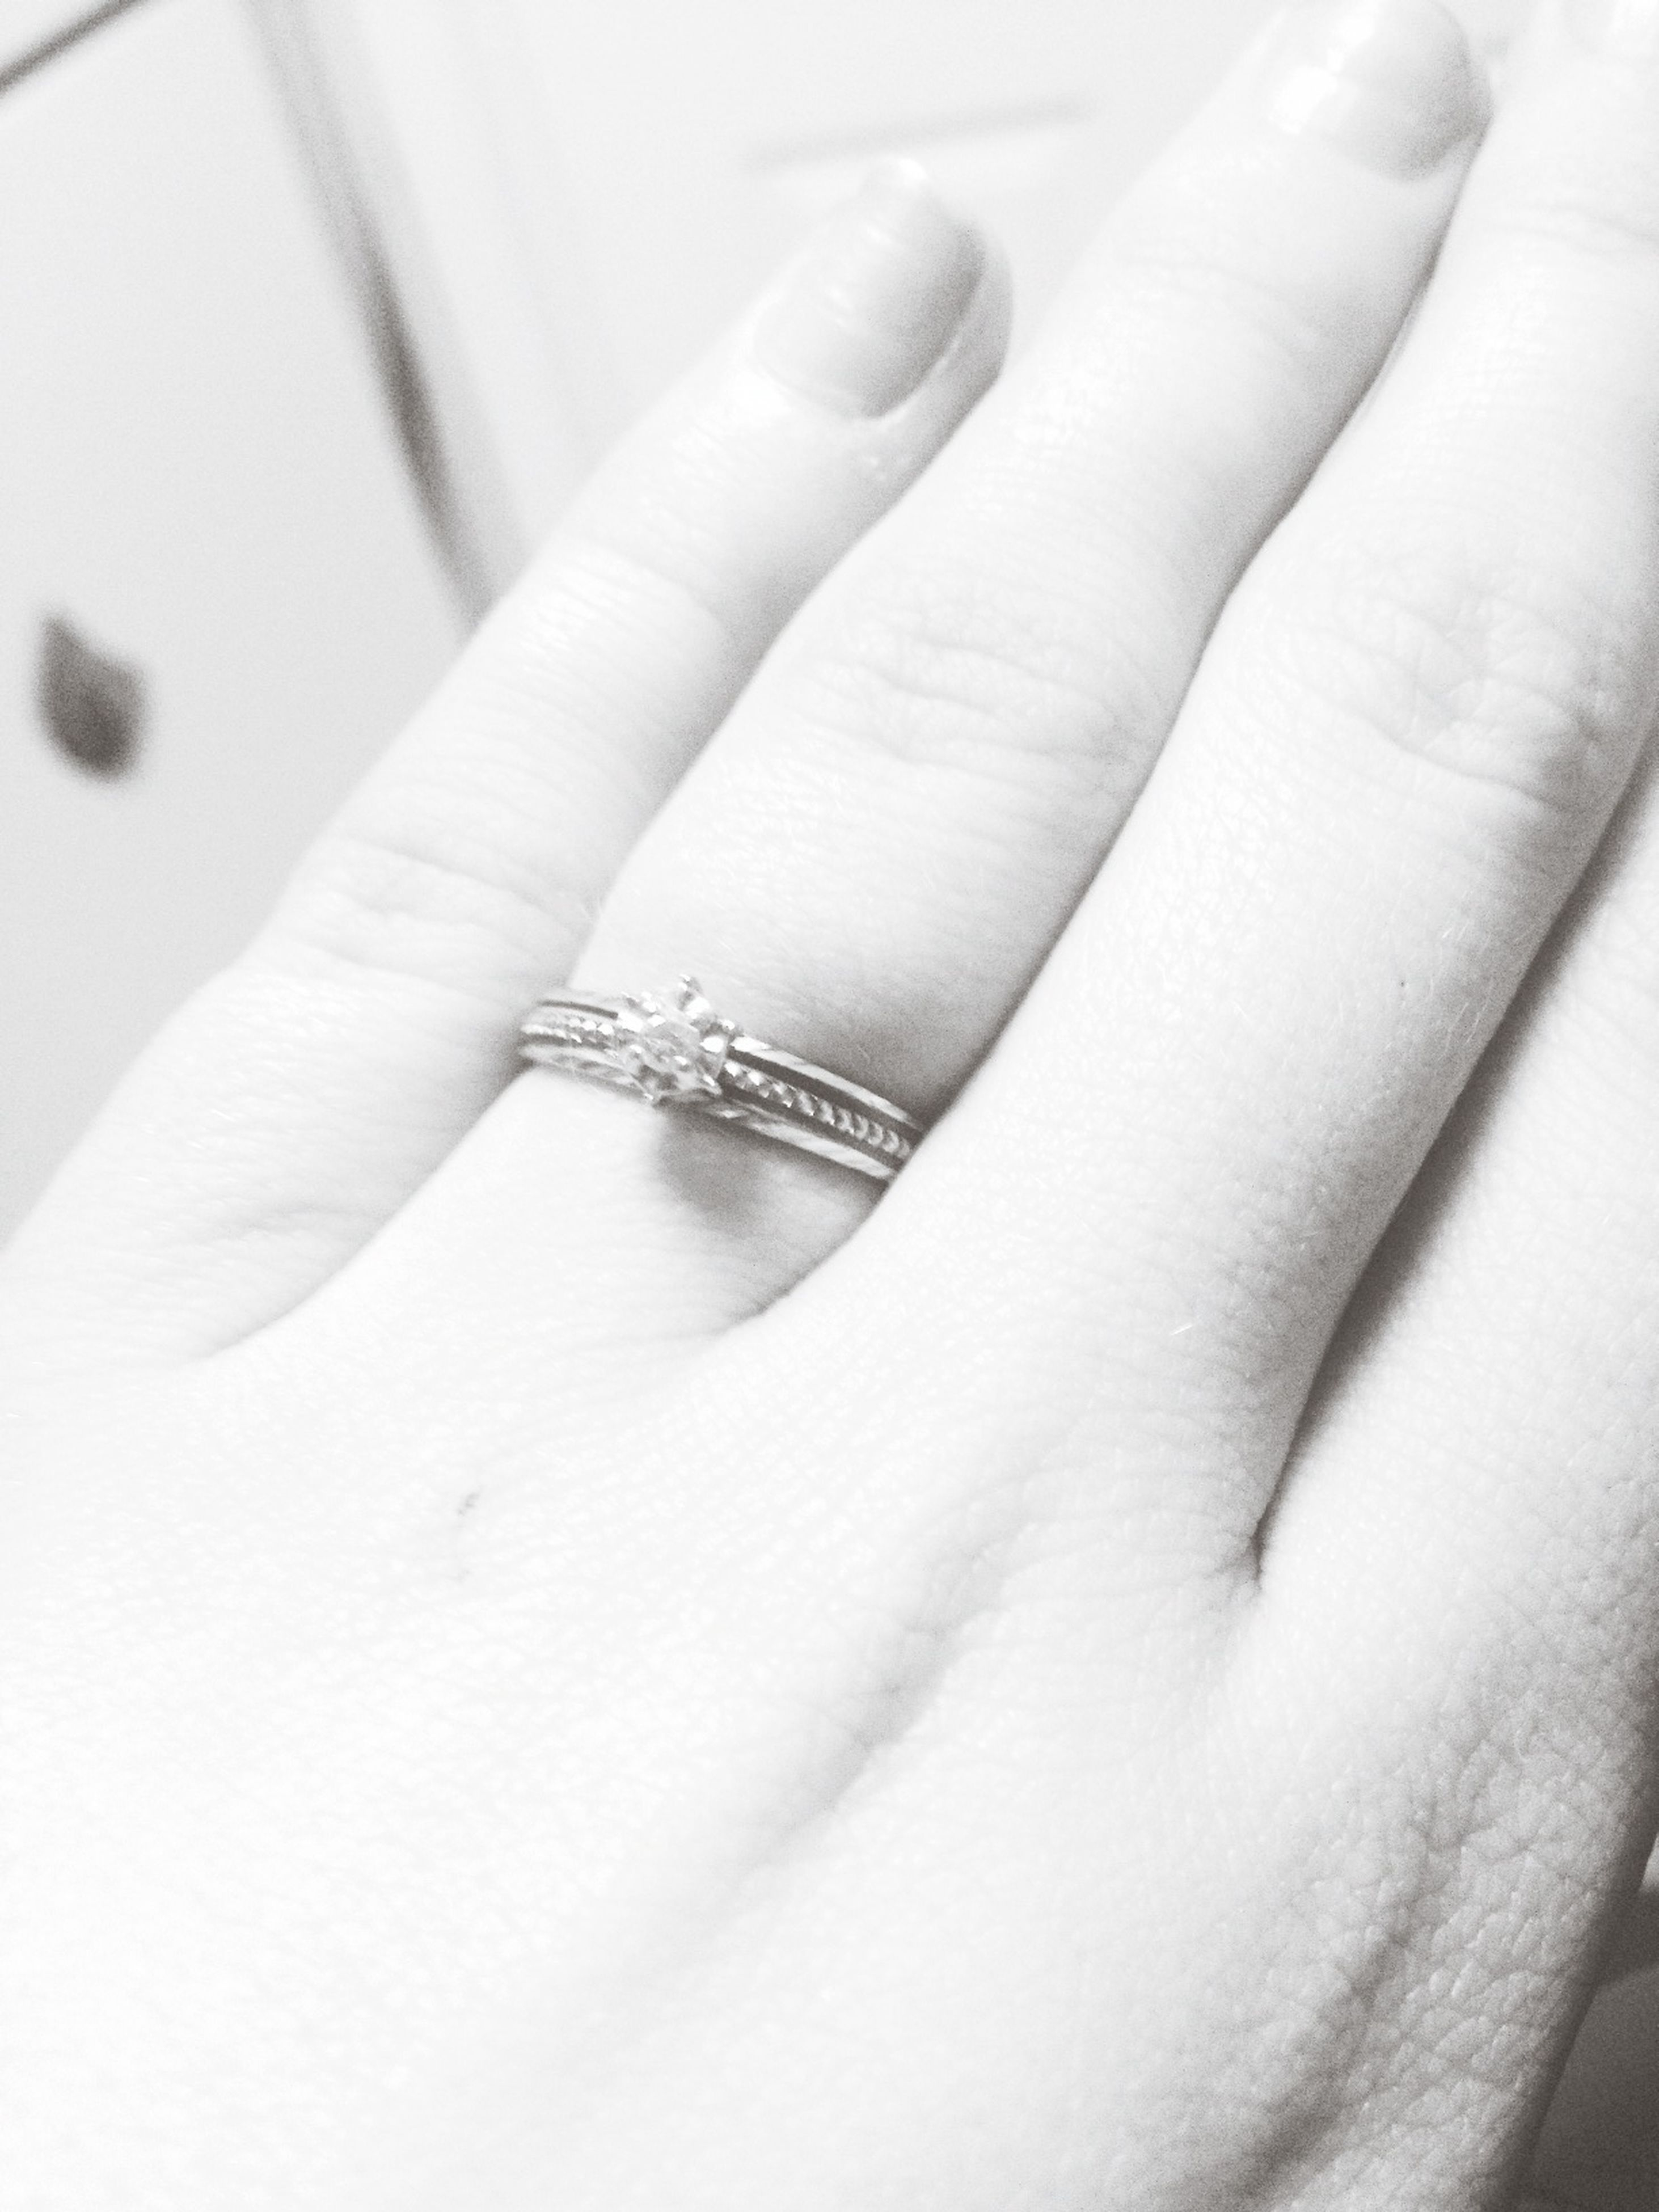 person, indoors, part of, close-up, cropped, human finger, holding, lifestyles, unrecognizable person, studio shot, human skin, ring, selective focus, high angle view, detail, leisure activity